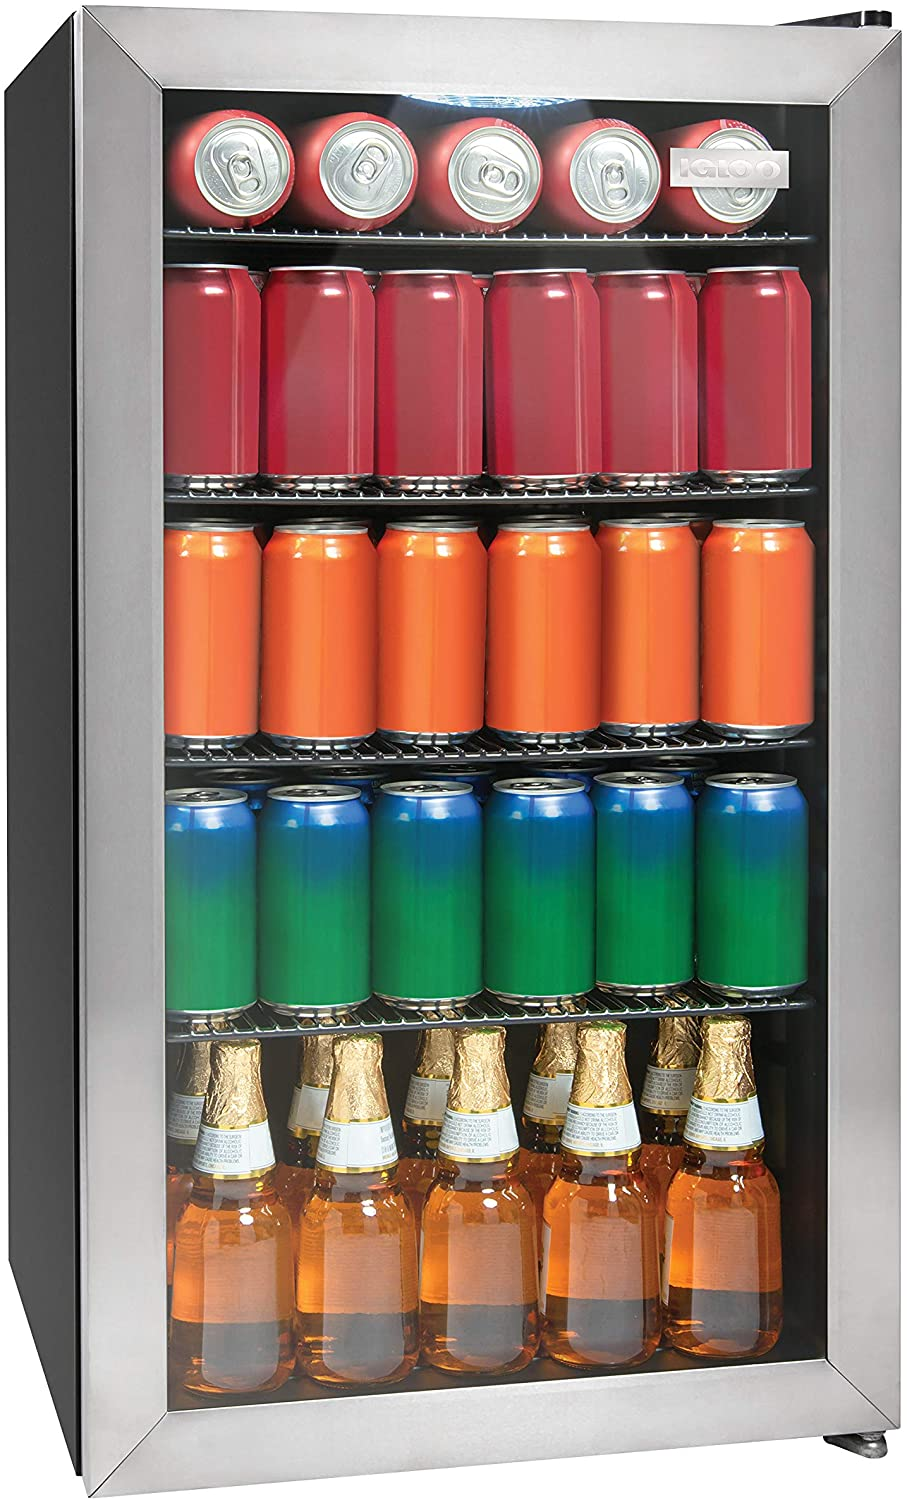 Igloo IBC35SS 135-Can Capacity Beverage Refrigerator & Cooler For Soda, Beer, Wine and Water LED-Lighted Double-Pane Glass Door, 3.5 Cu. Ft, Stainless Steel